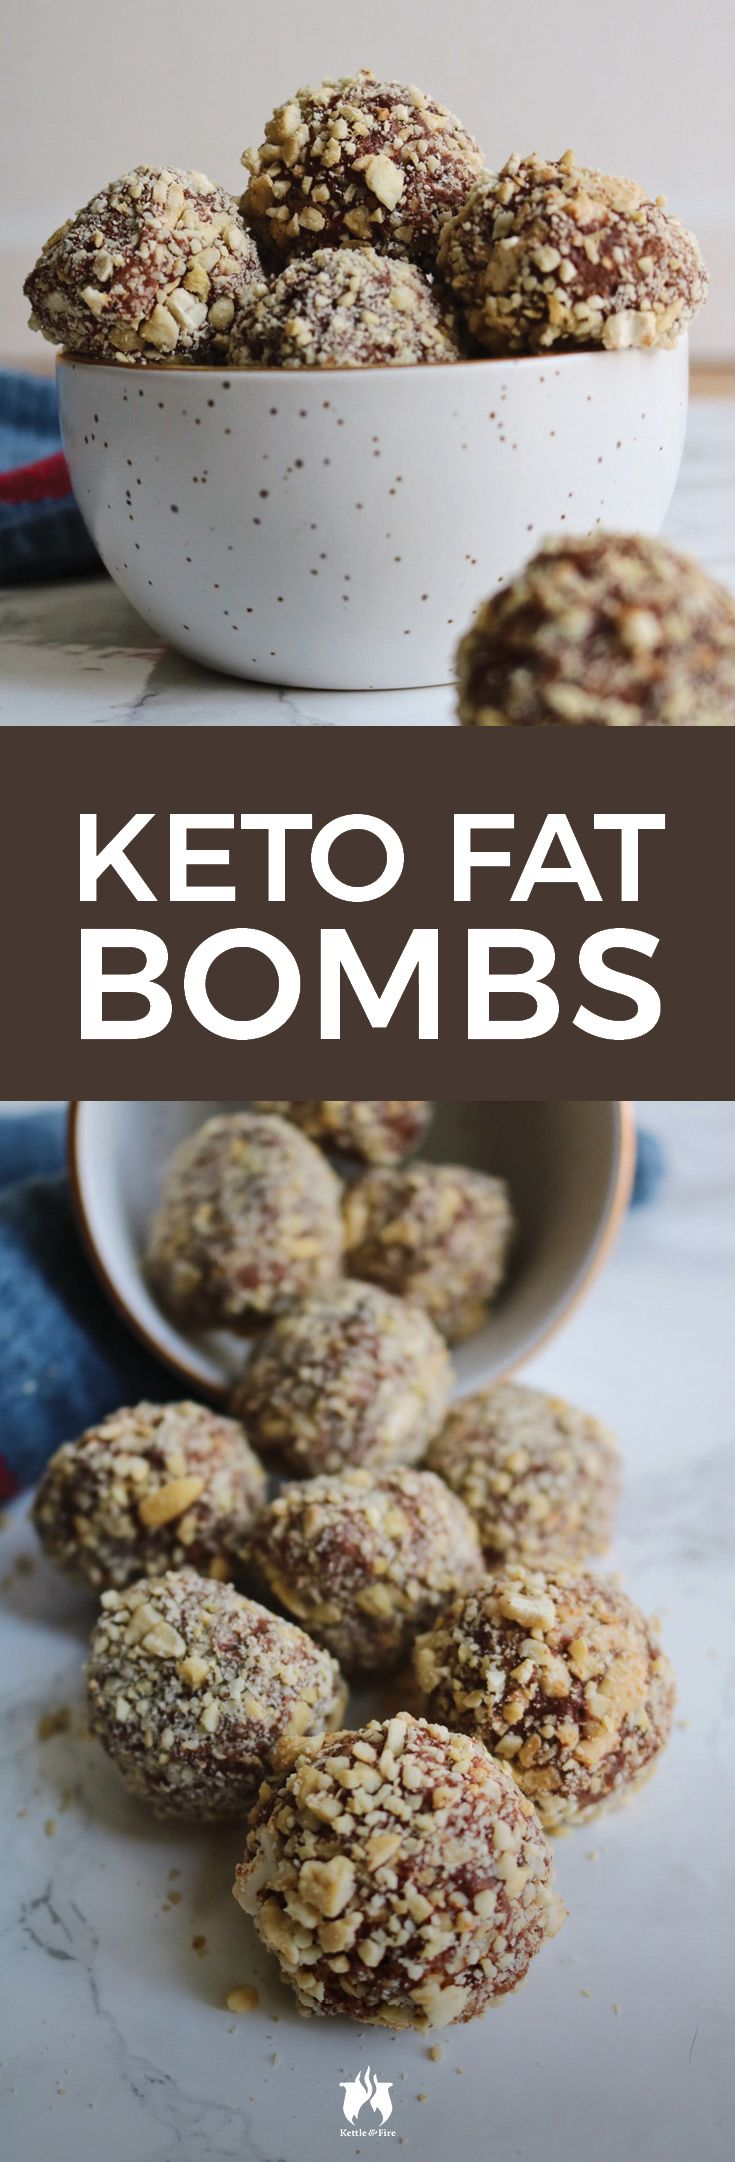 With a truffle-like texture and perfect amount of crunch, these keto fat bombs will help you meet the daily fat requirements needed to stay in ketosis.